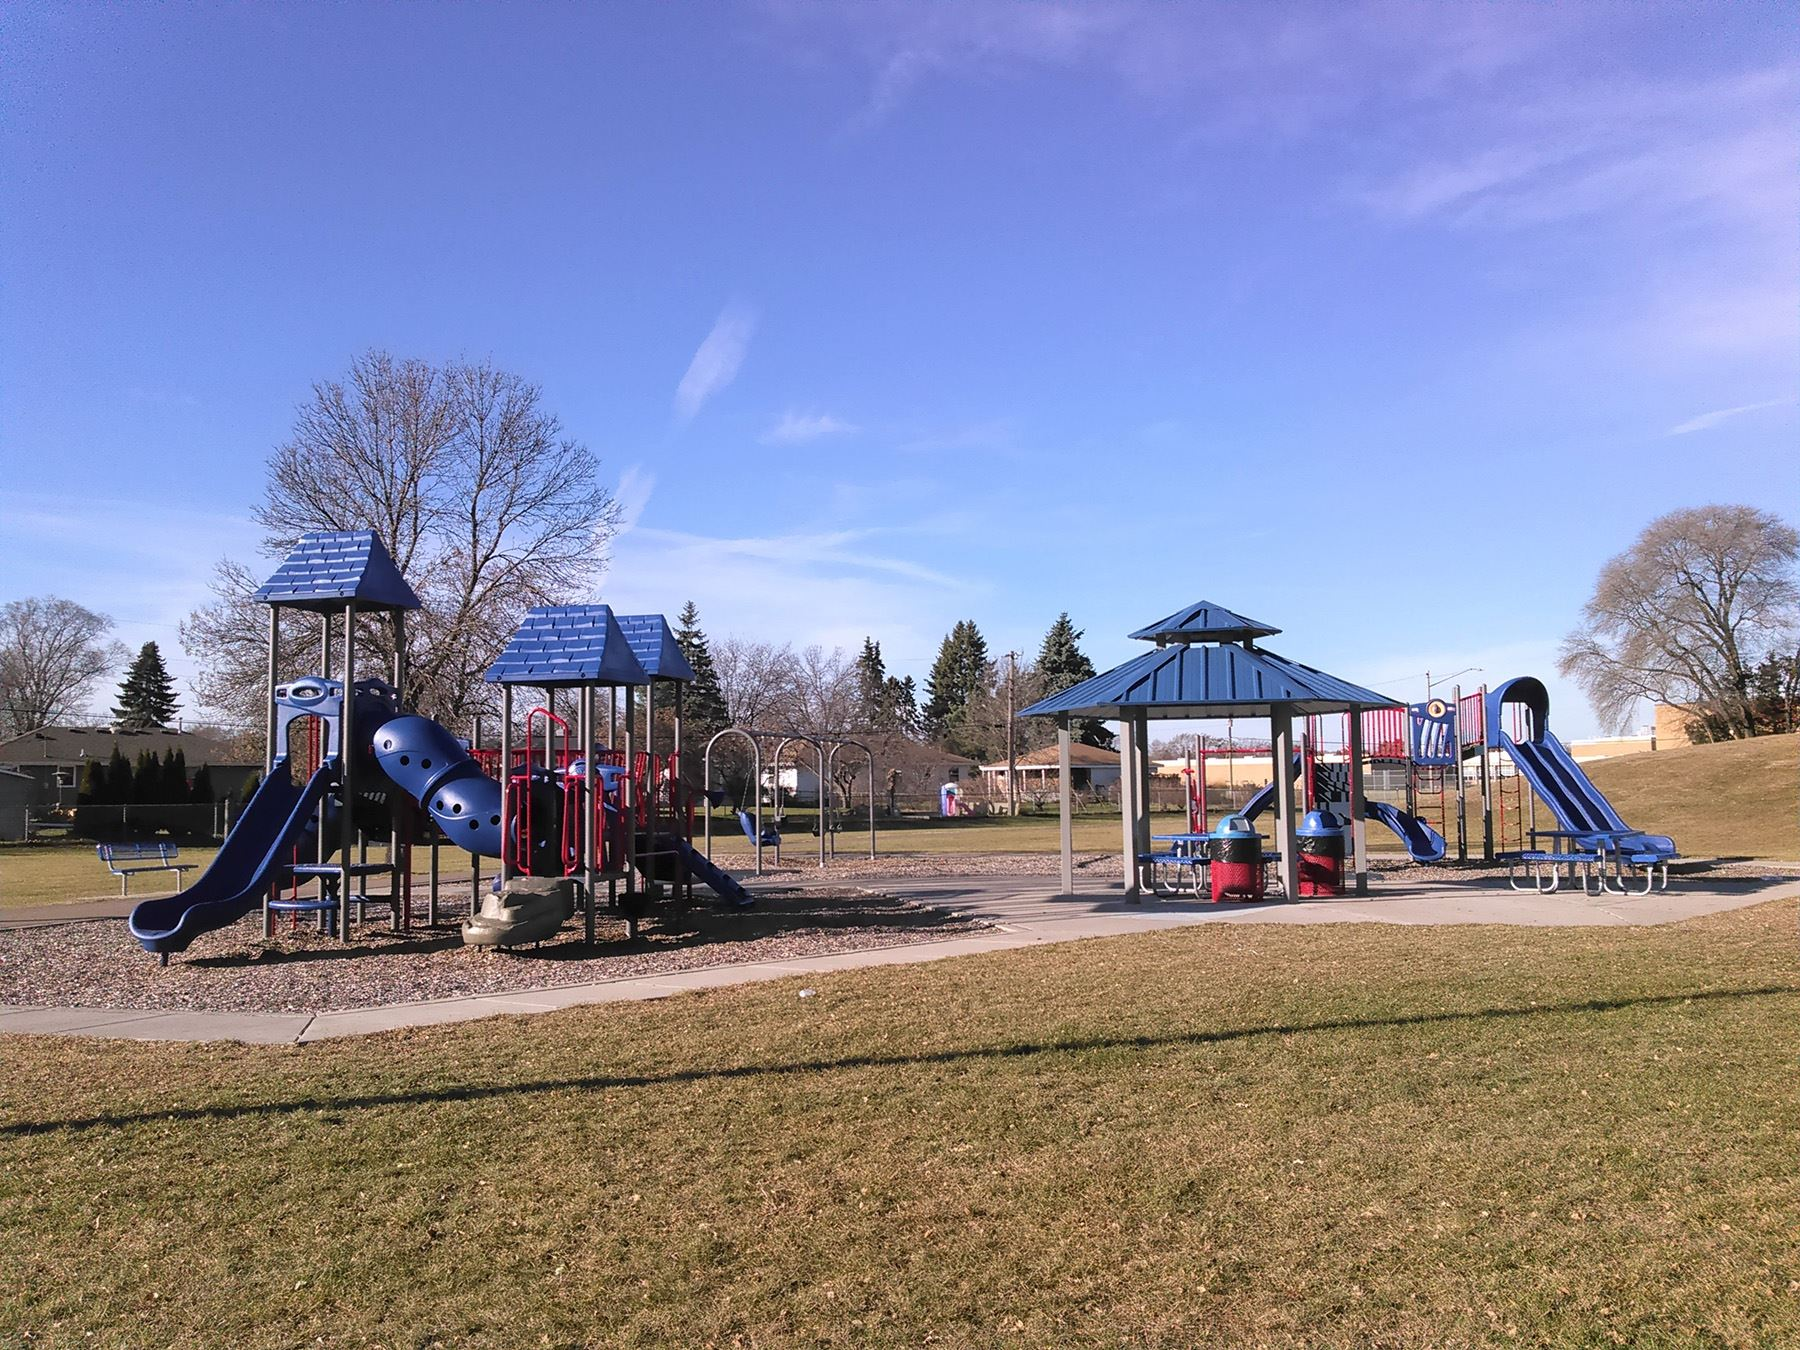 Playground structure at Peppermint Stick Park